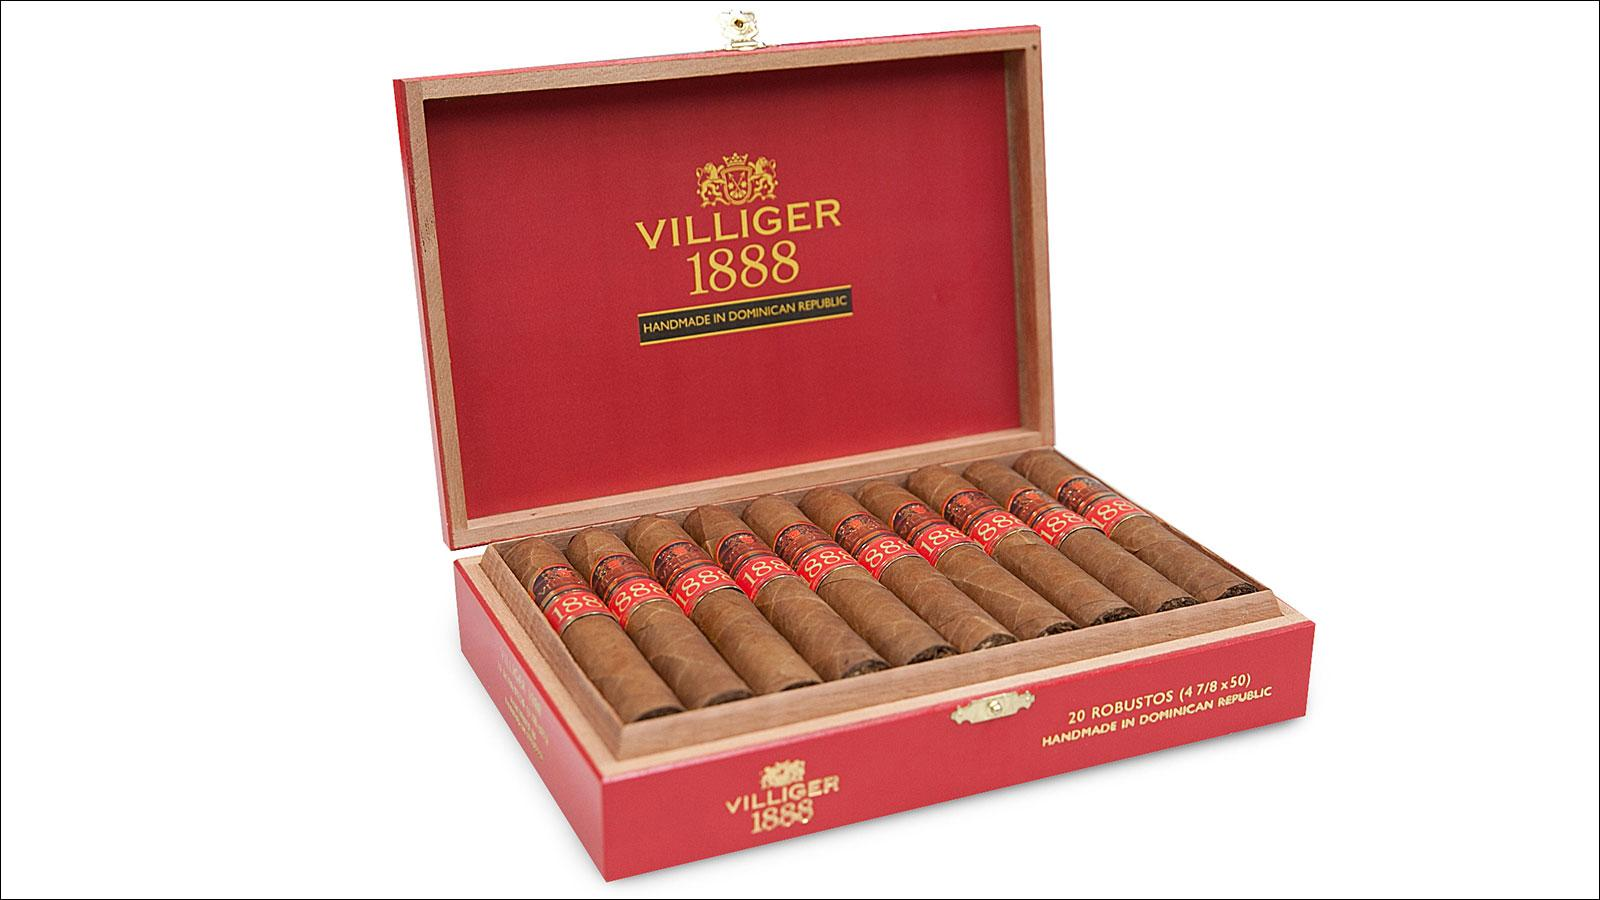 Villiger 1888 Relaunches Next Week With New Image And New Blend